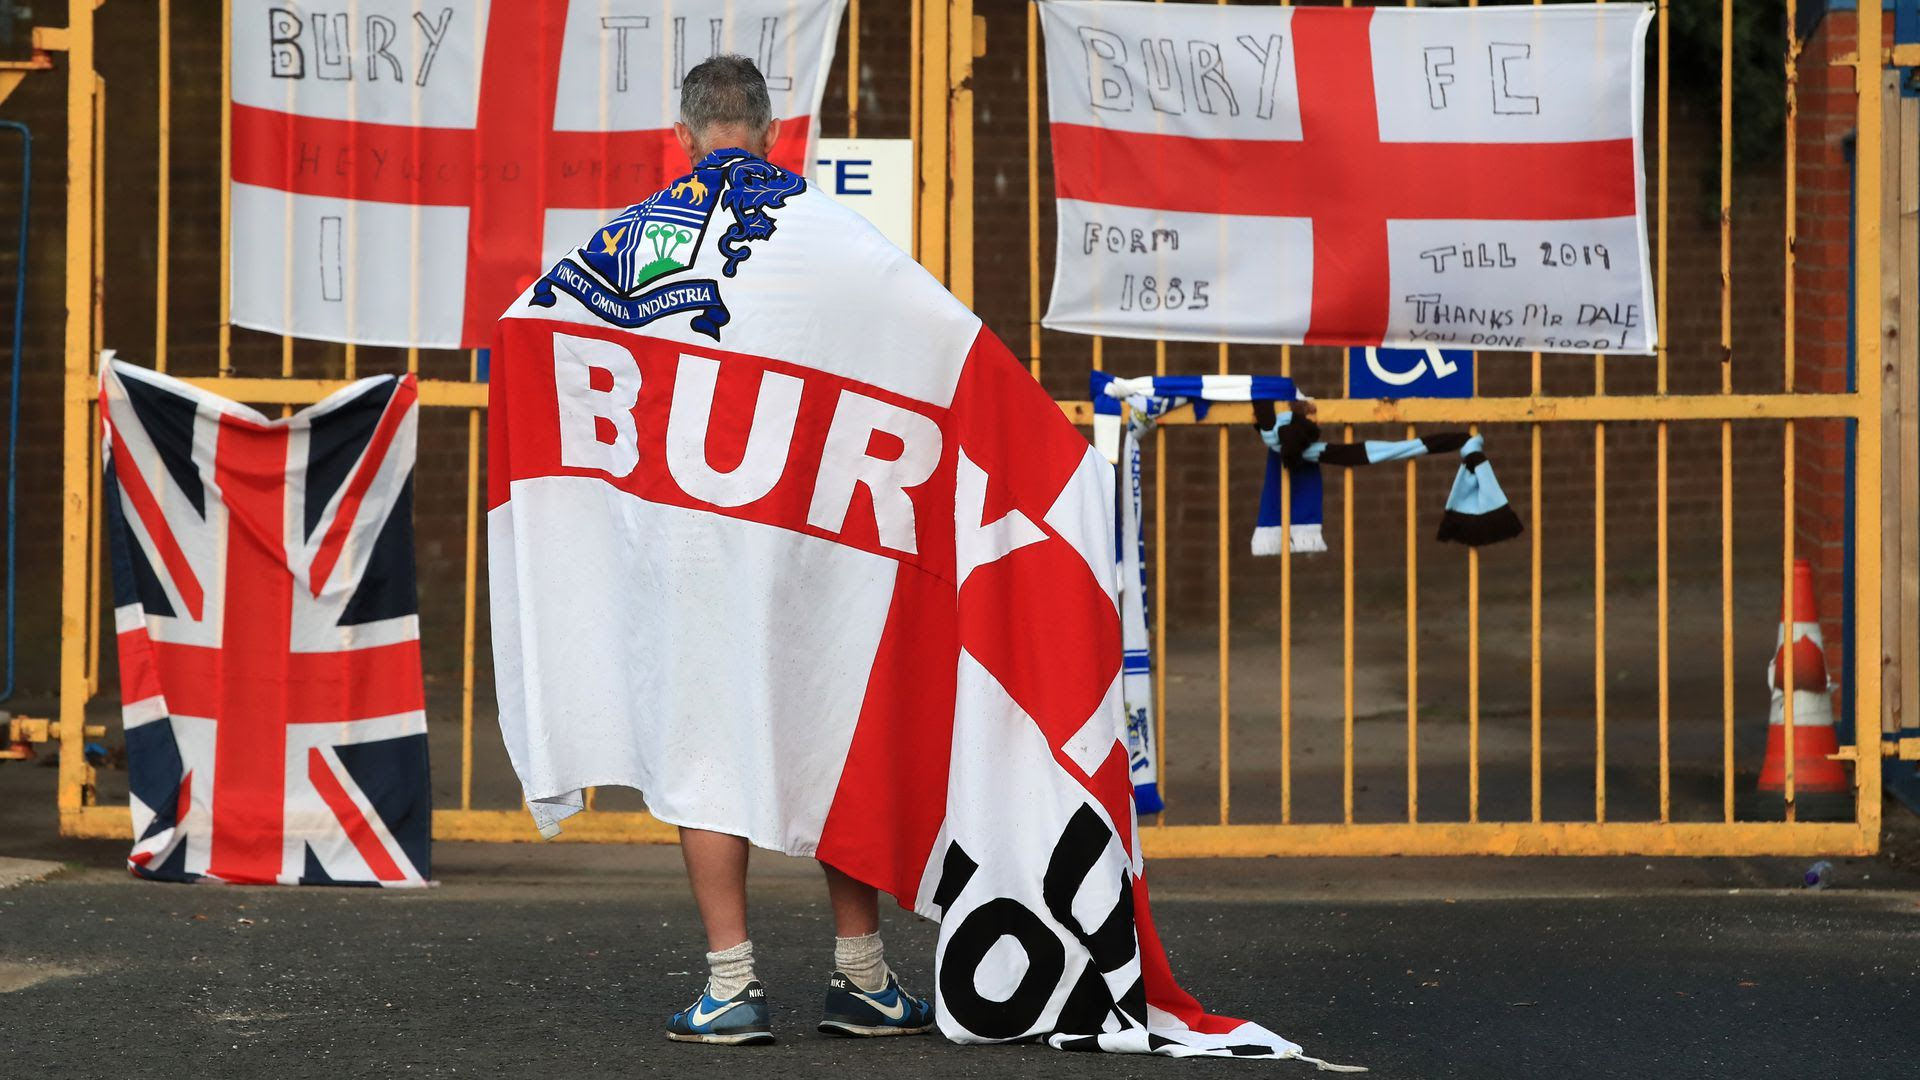 A man standing in front of the now closed English soccer club Bury FC